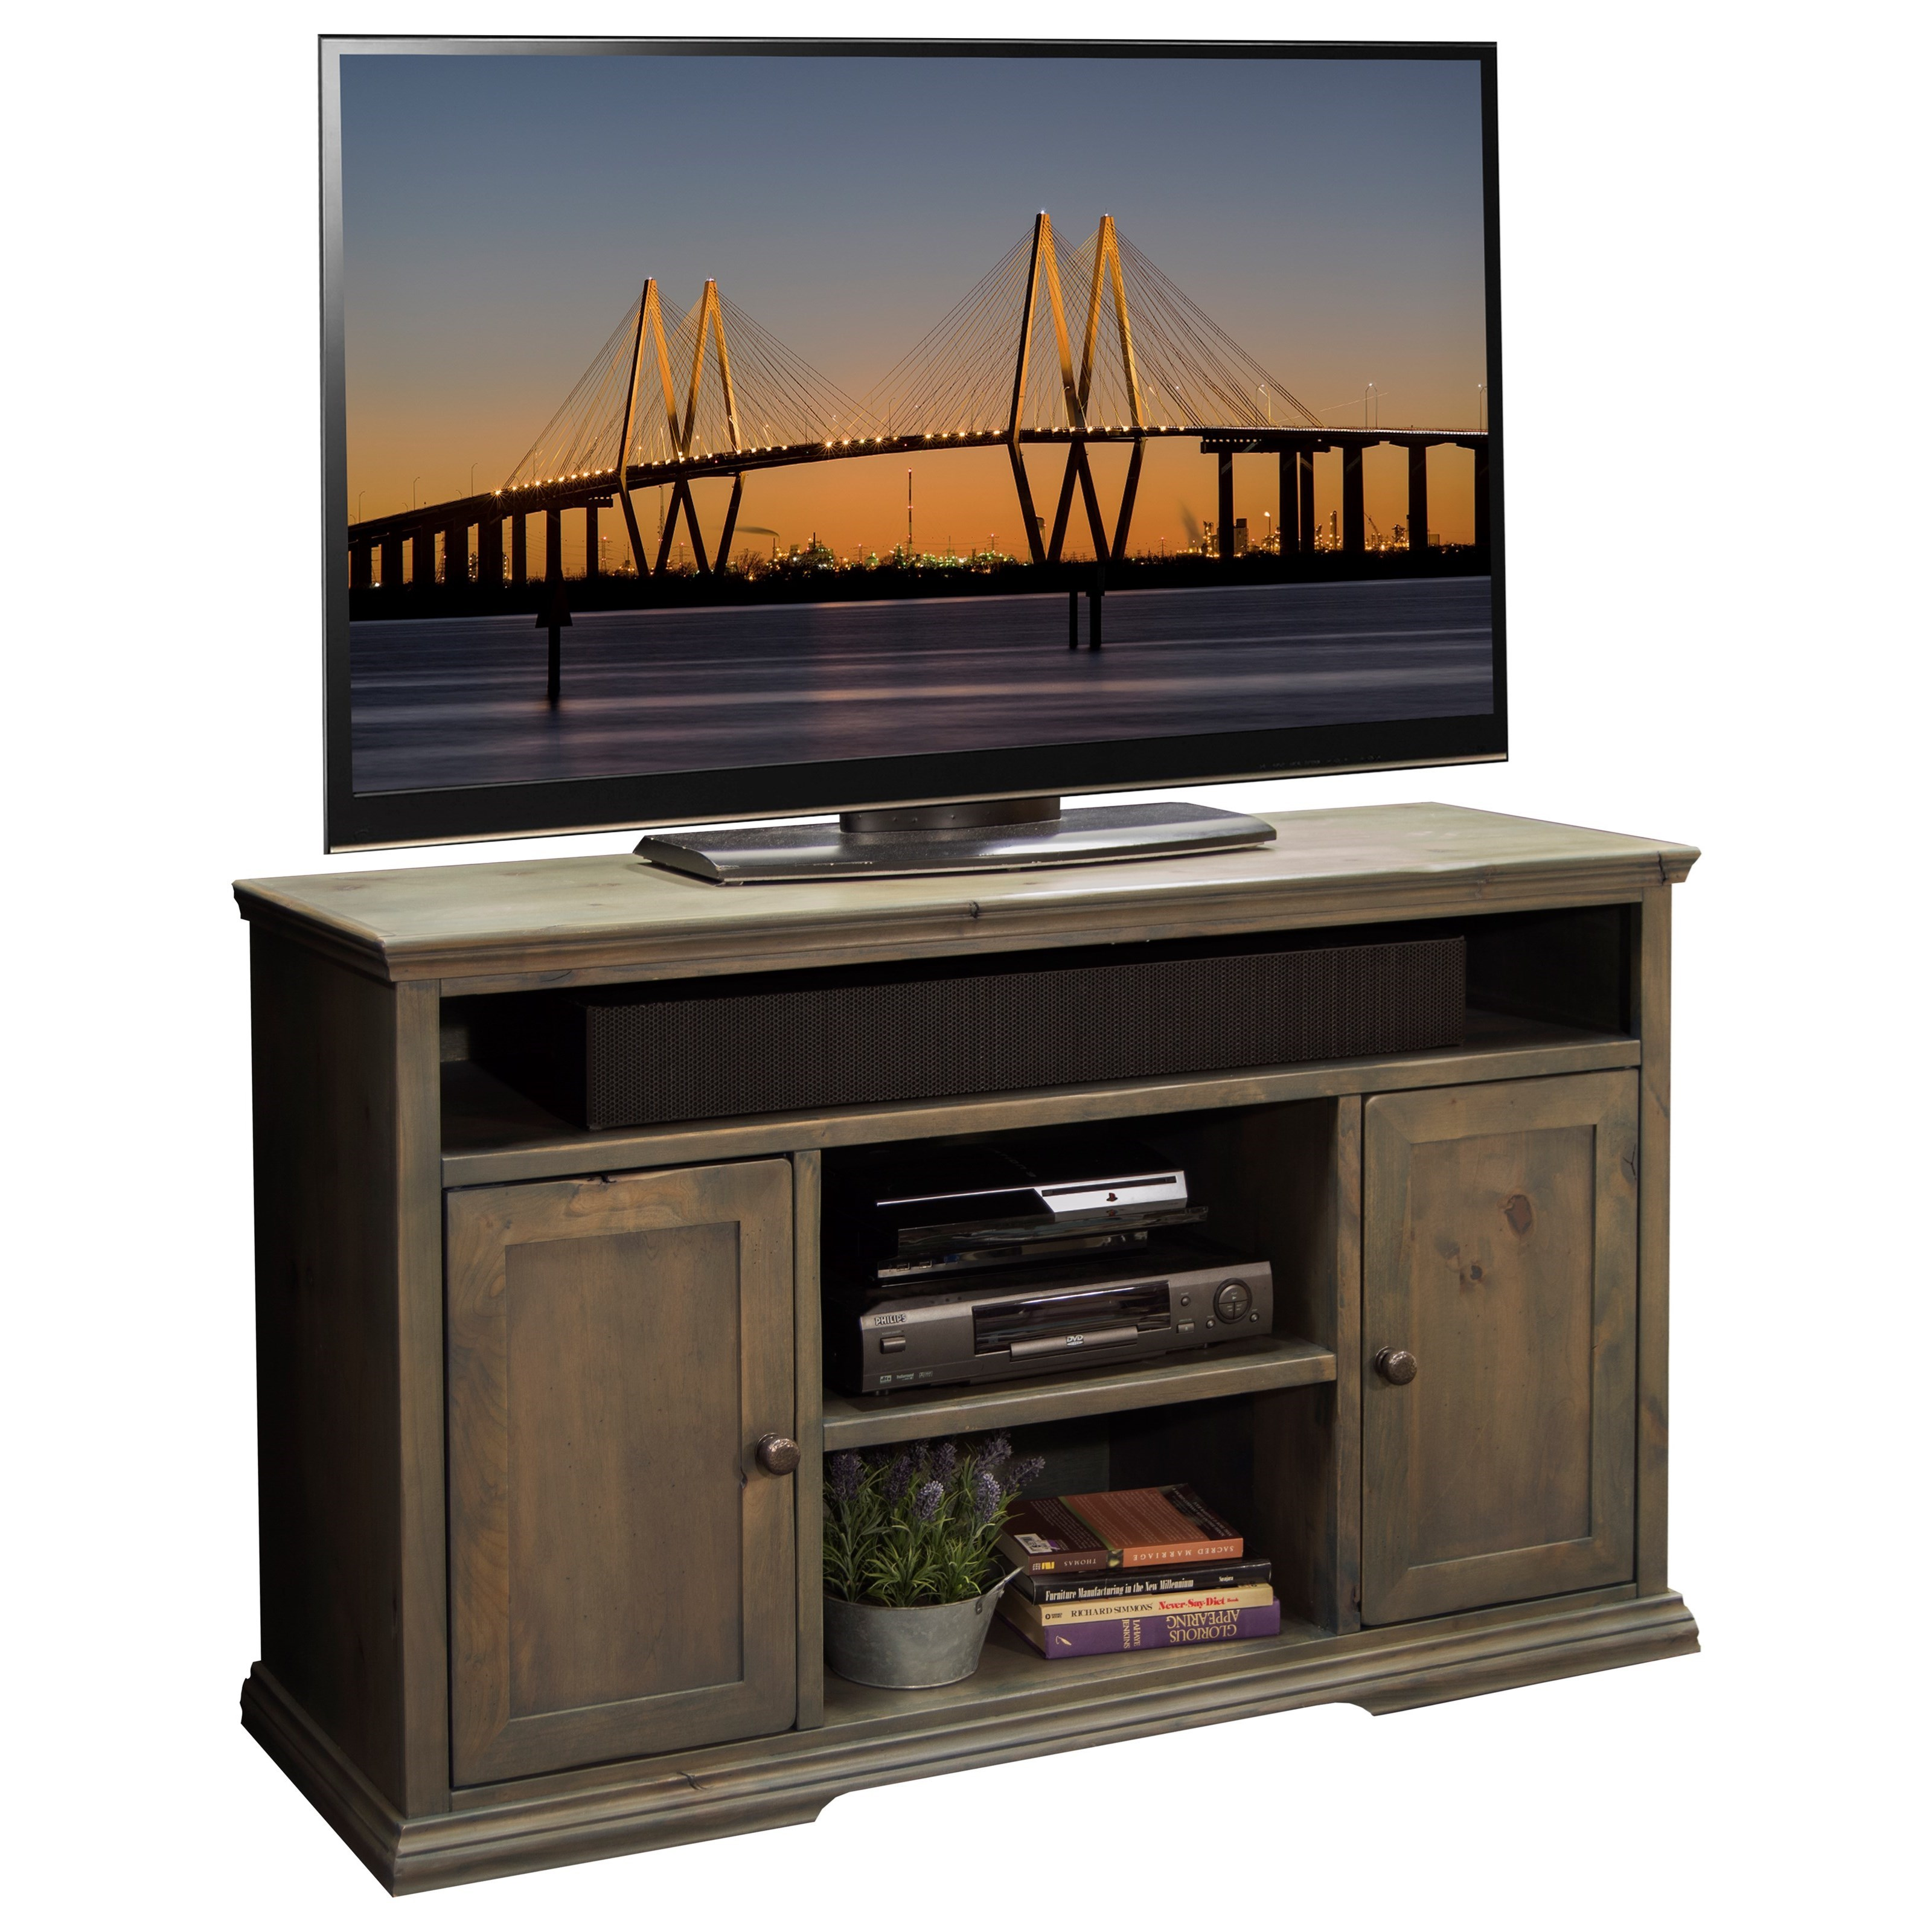 "Legends Furniture Greyson 54"" TV Cart - Item Number: GY1327"